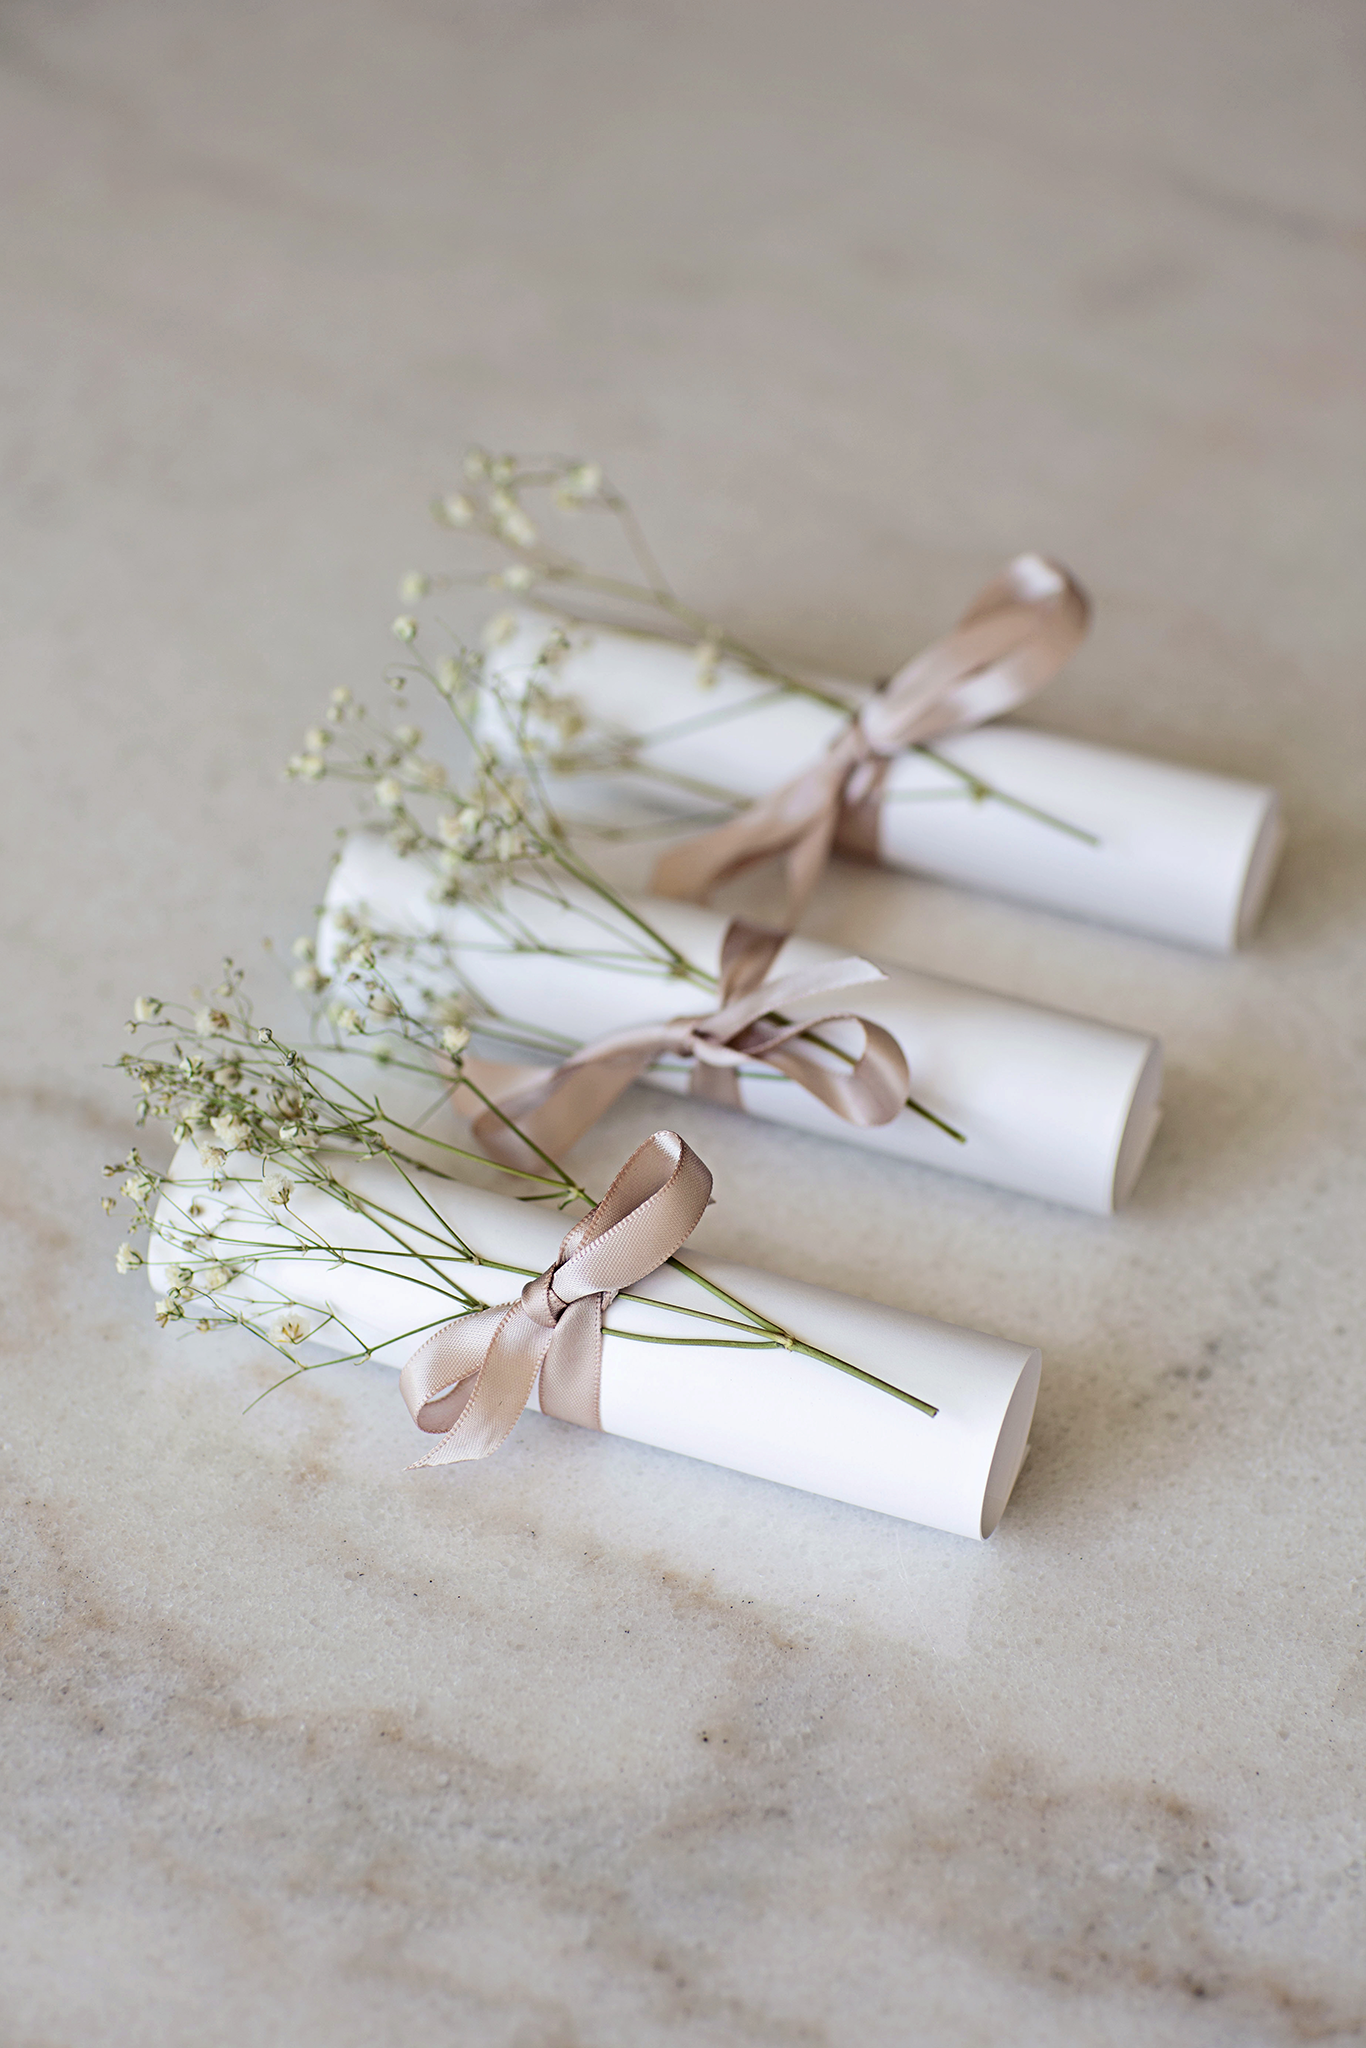 Letters rolled into scrolls, with ribbon and dried flowers